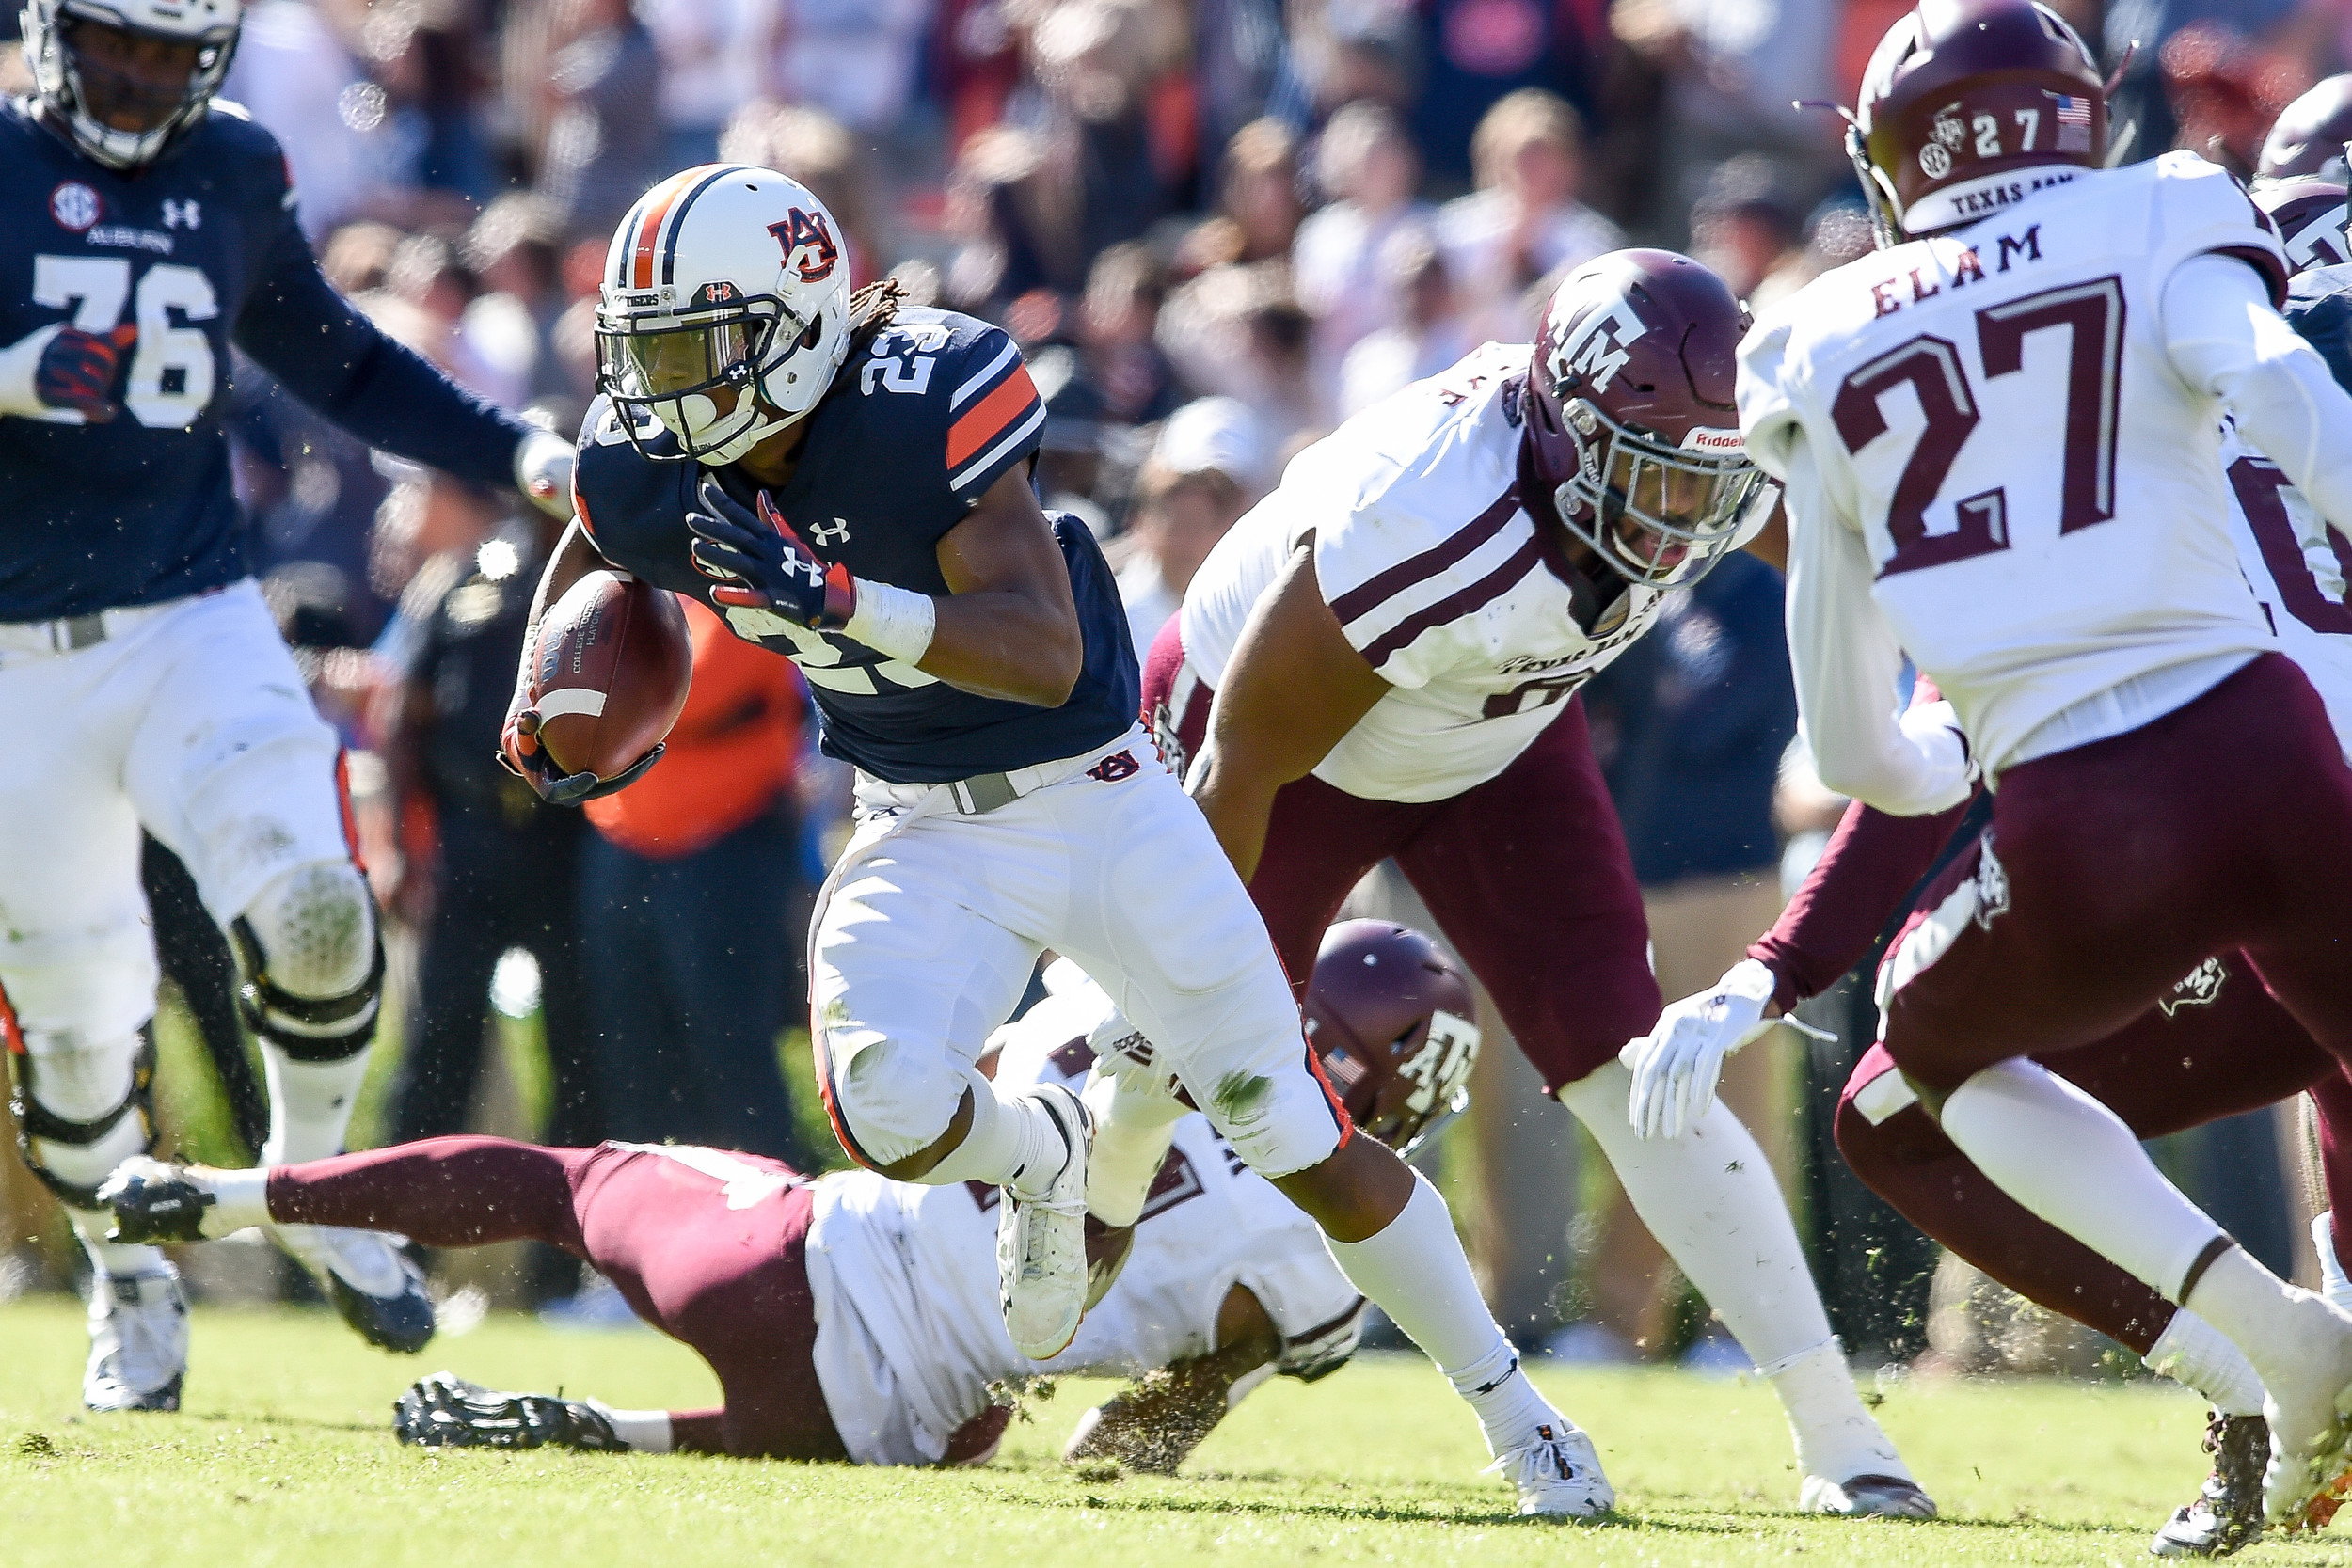 Auburn Tigers wide receiver Ryan Davis (23) breaks the tackle of Texas A&M Aggies defensive back Charles Oliver (21) during the second half of an NCAA football game Saturday, November 3, 2018, at Jordan-Hare Stadium in Auburn, Ala. (Photo by Jeff Johnsey)